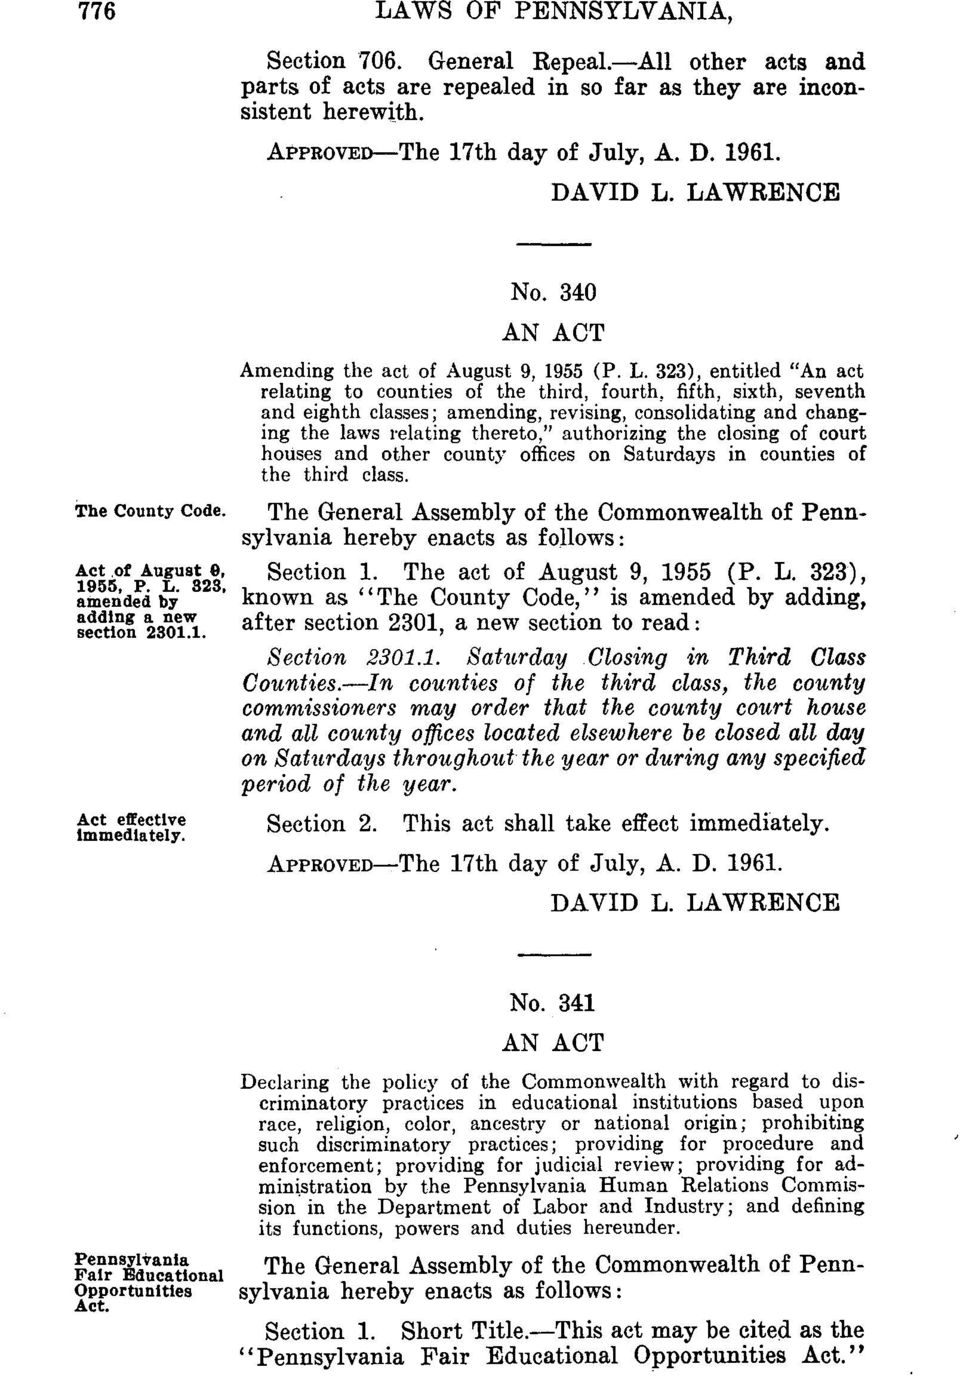 323, amended by adding a new section 2301.1. Act e~ectlve immediately. No. 340 AN ACT Amending the act of August 9, 1955 (P. L.